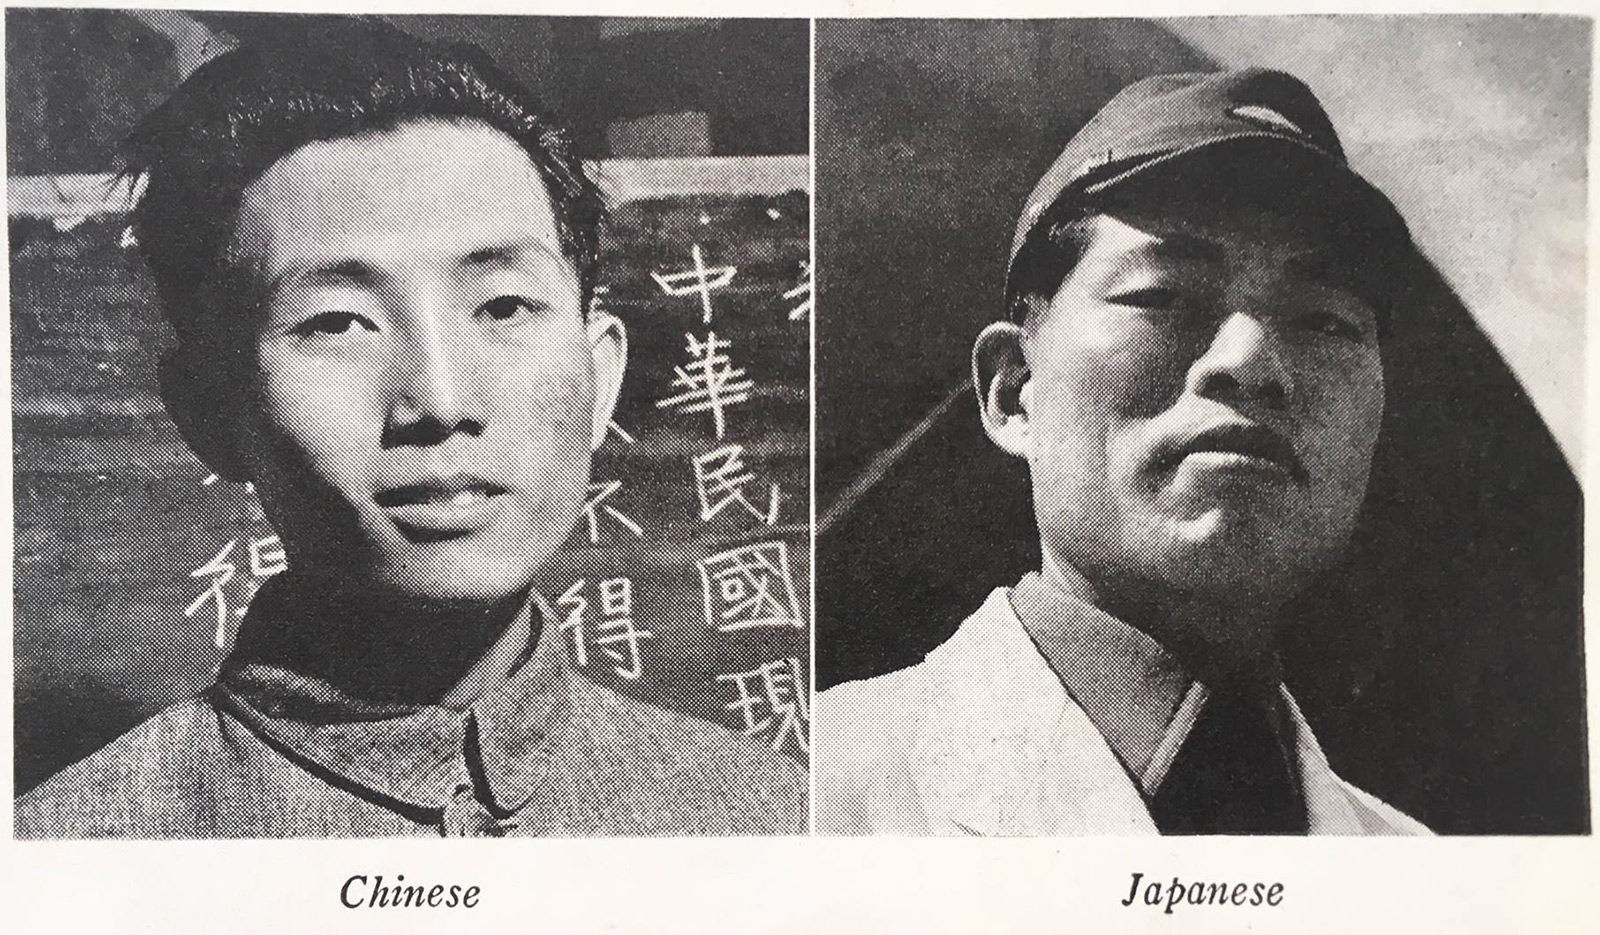 Side-by-side grainy black-and-white photographs of a Chinese face and a Japanese face, used as a guide for Americans to tell friend from foe